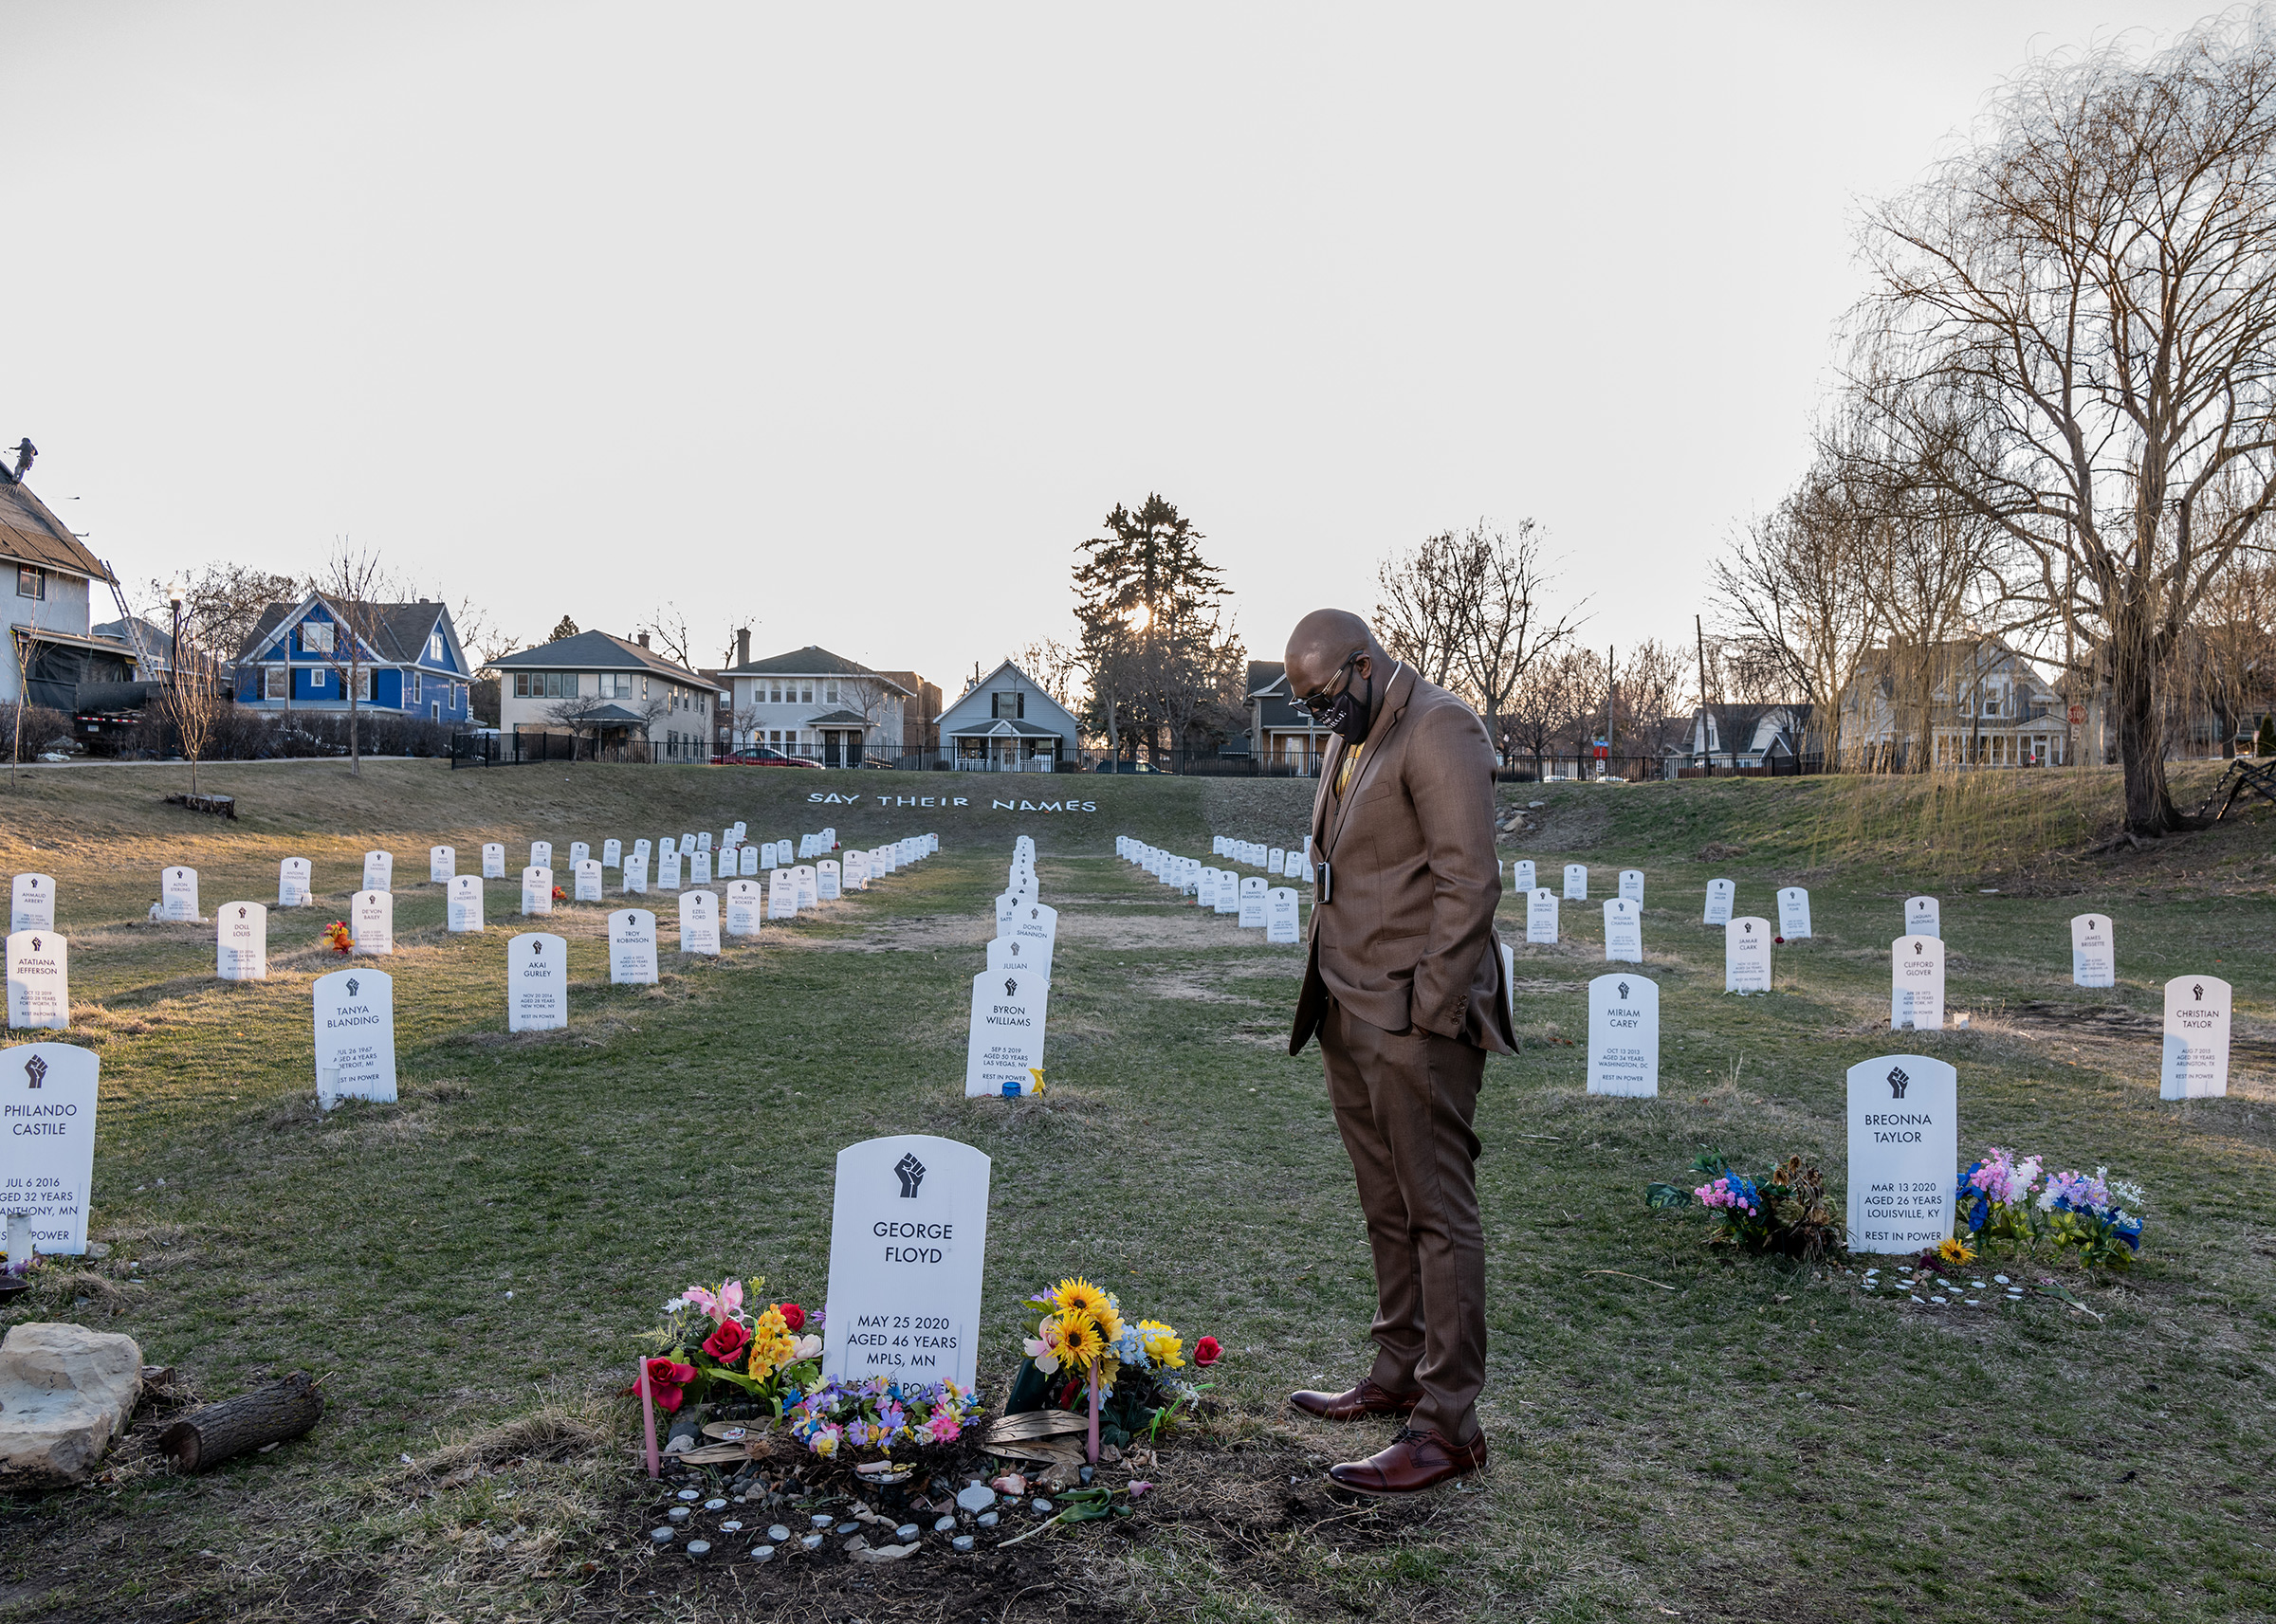 George Floyd's brother Philonise Floyd visits a protest art installation on April 1. The tombstones bear the names of Black Americans who were lynched by private citizens, fatally shot or choked by police officers, and other victims who died in police custody.